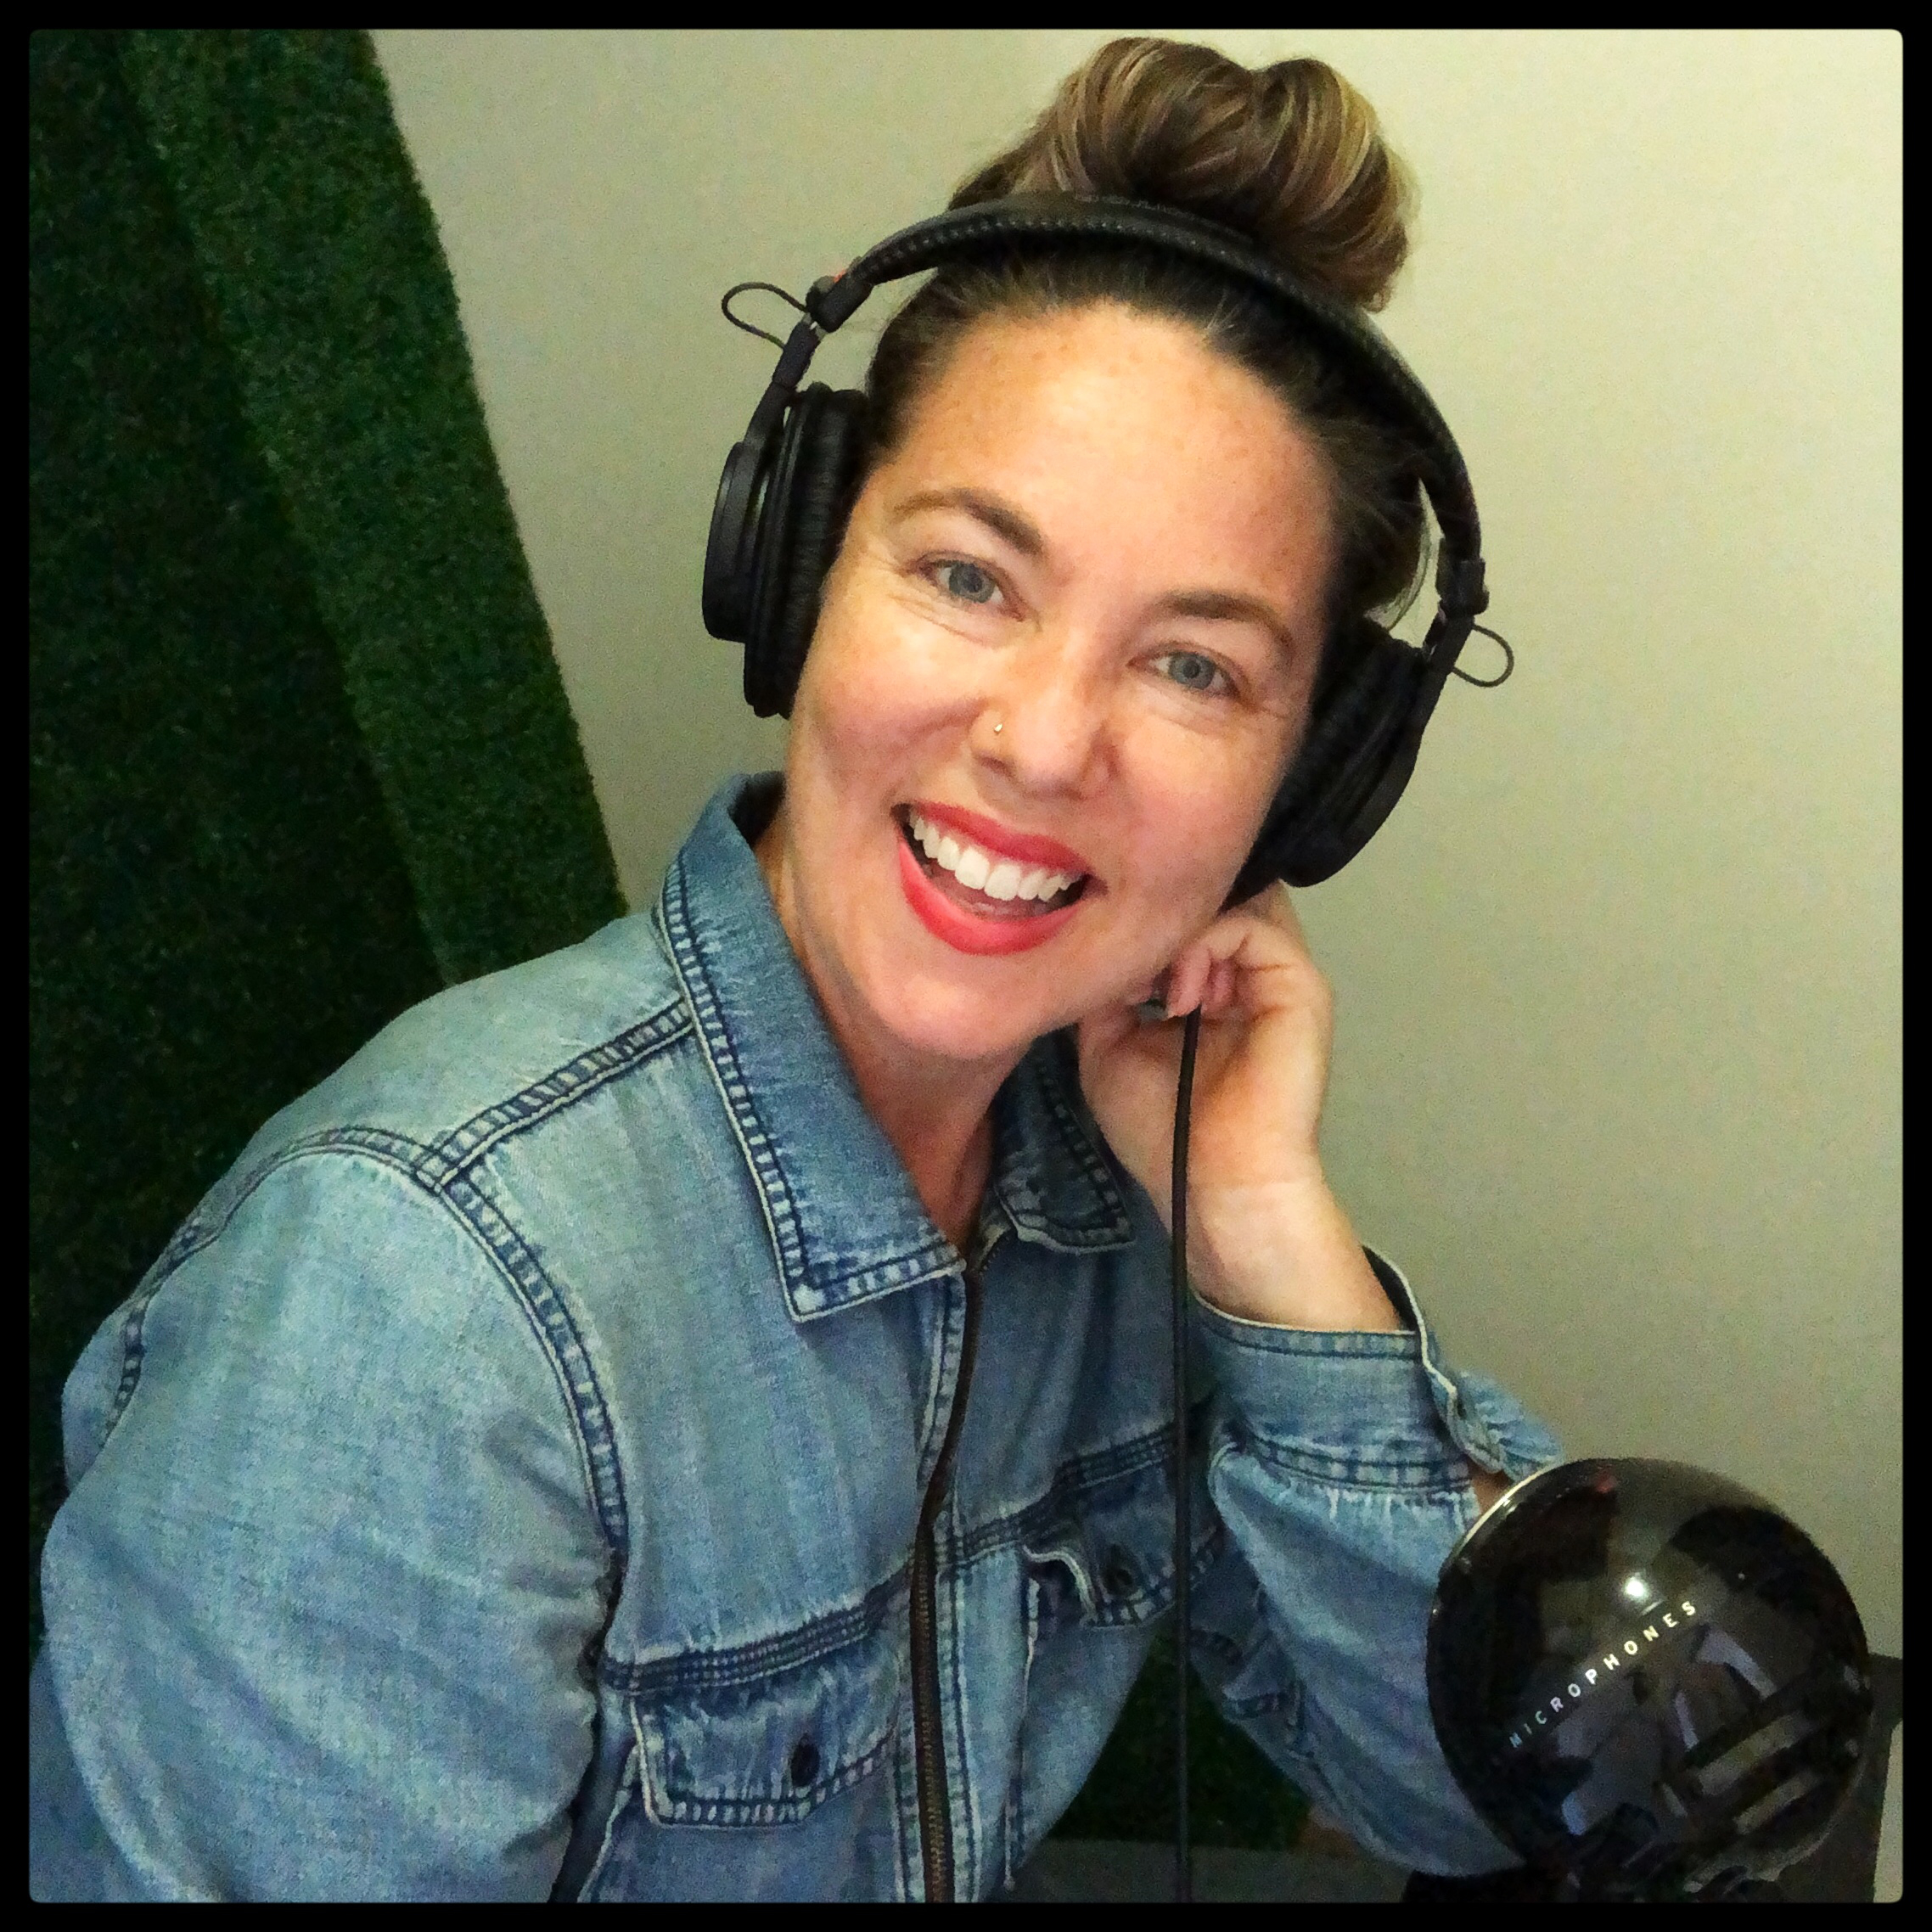 A white woman in her thirties with blue eyes, dark brown hair piled on her head in a messy bun. She is wearing large headphones and smiling